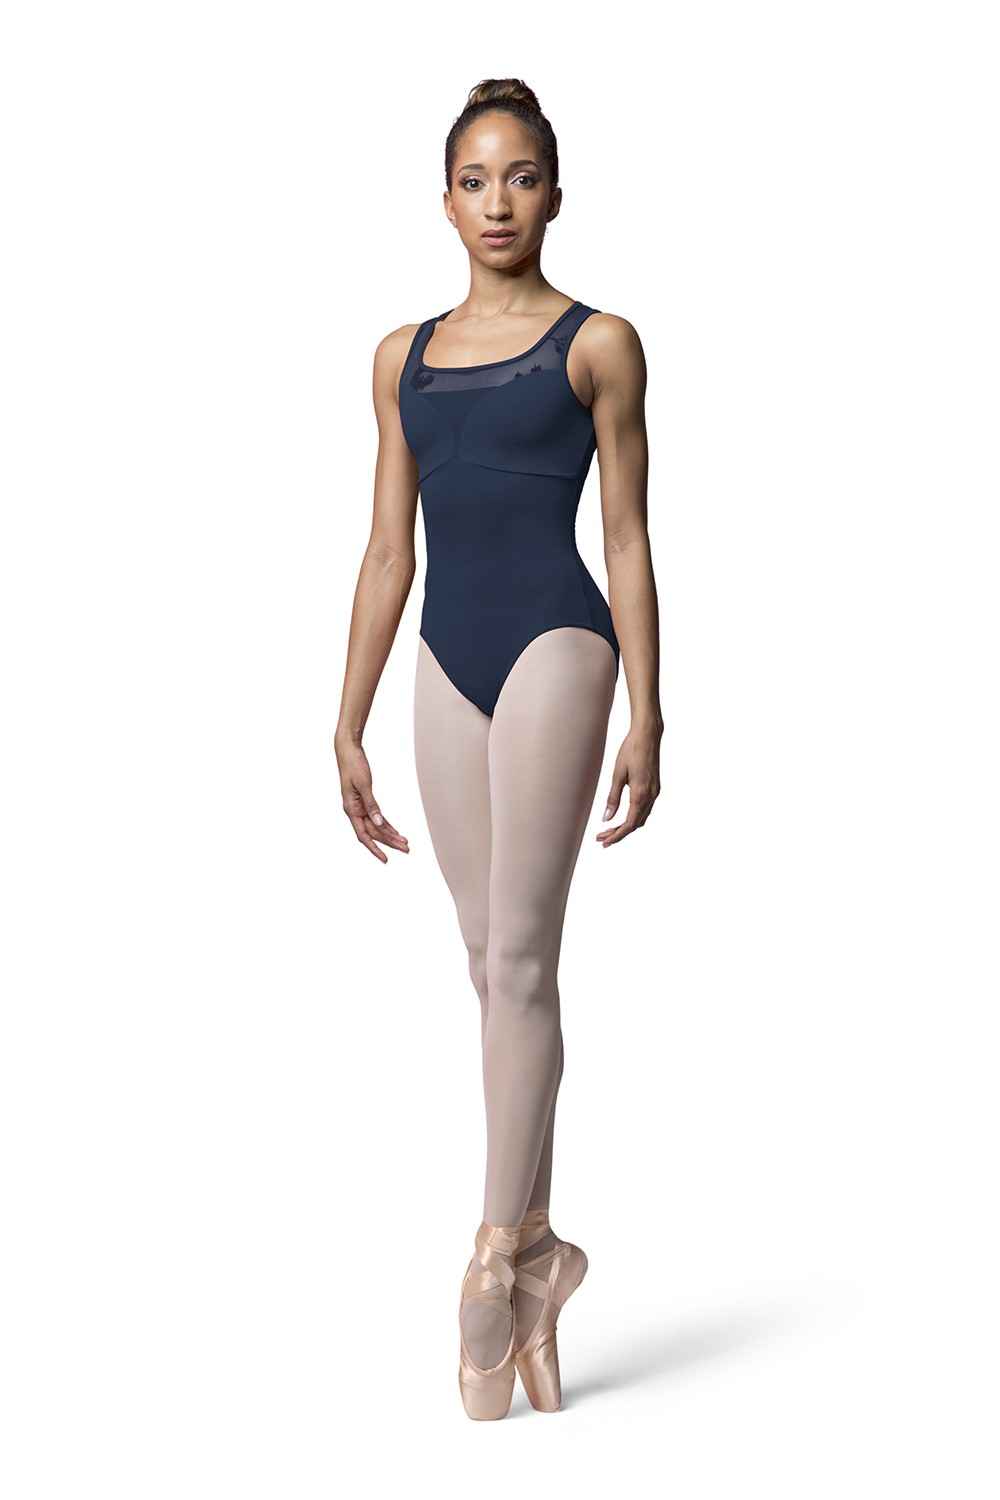 46c38ac62 Women s Tank Leotards - BLOCH® US Store